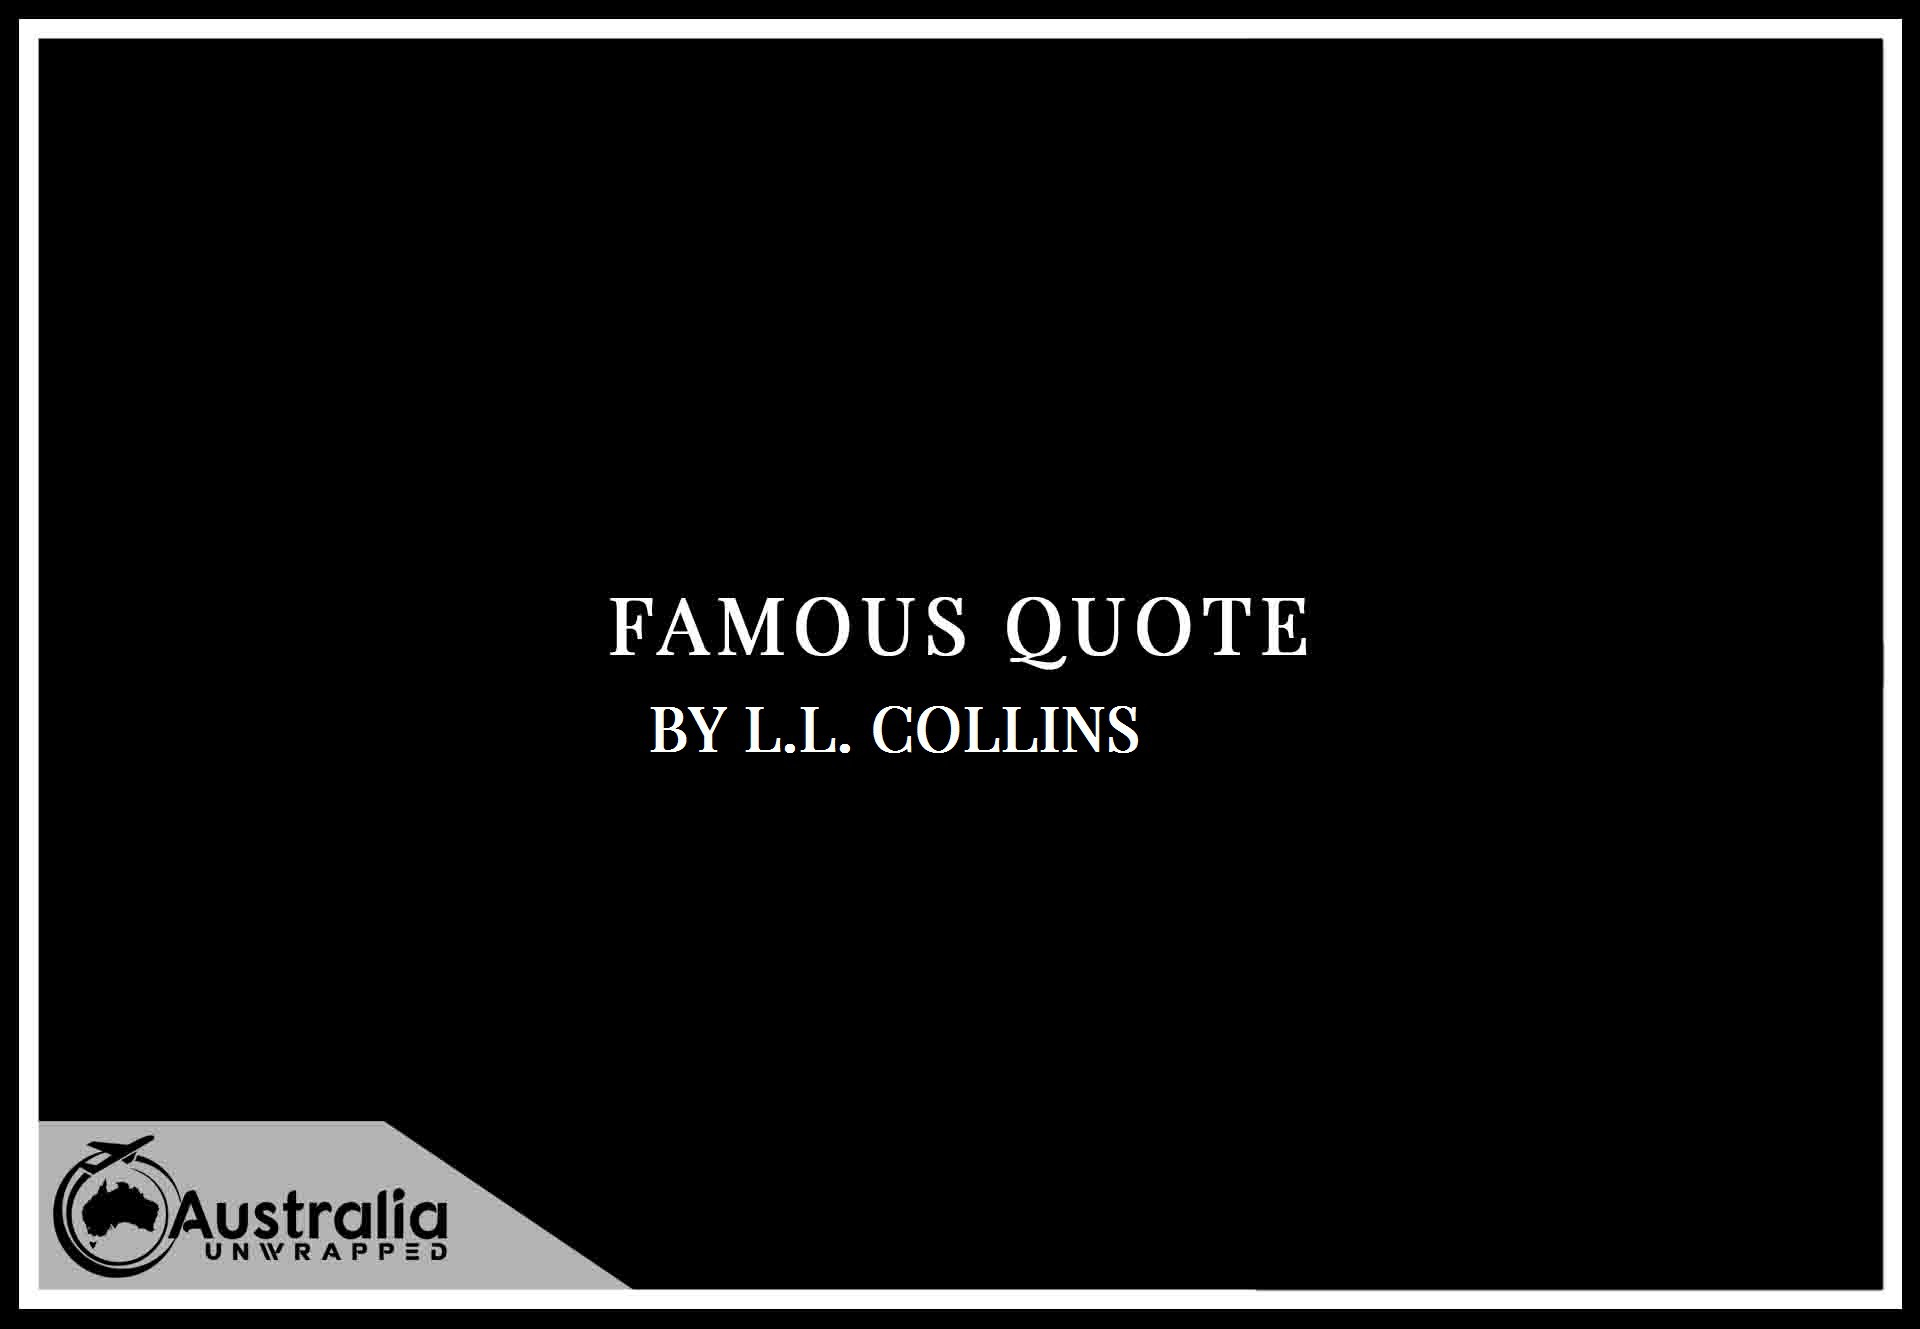 L.L. Collins's Top 1 Popular and Famous Quotes